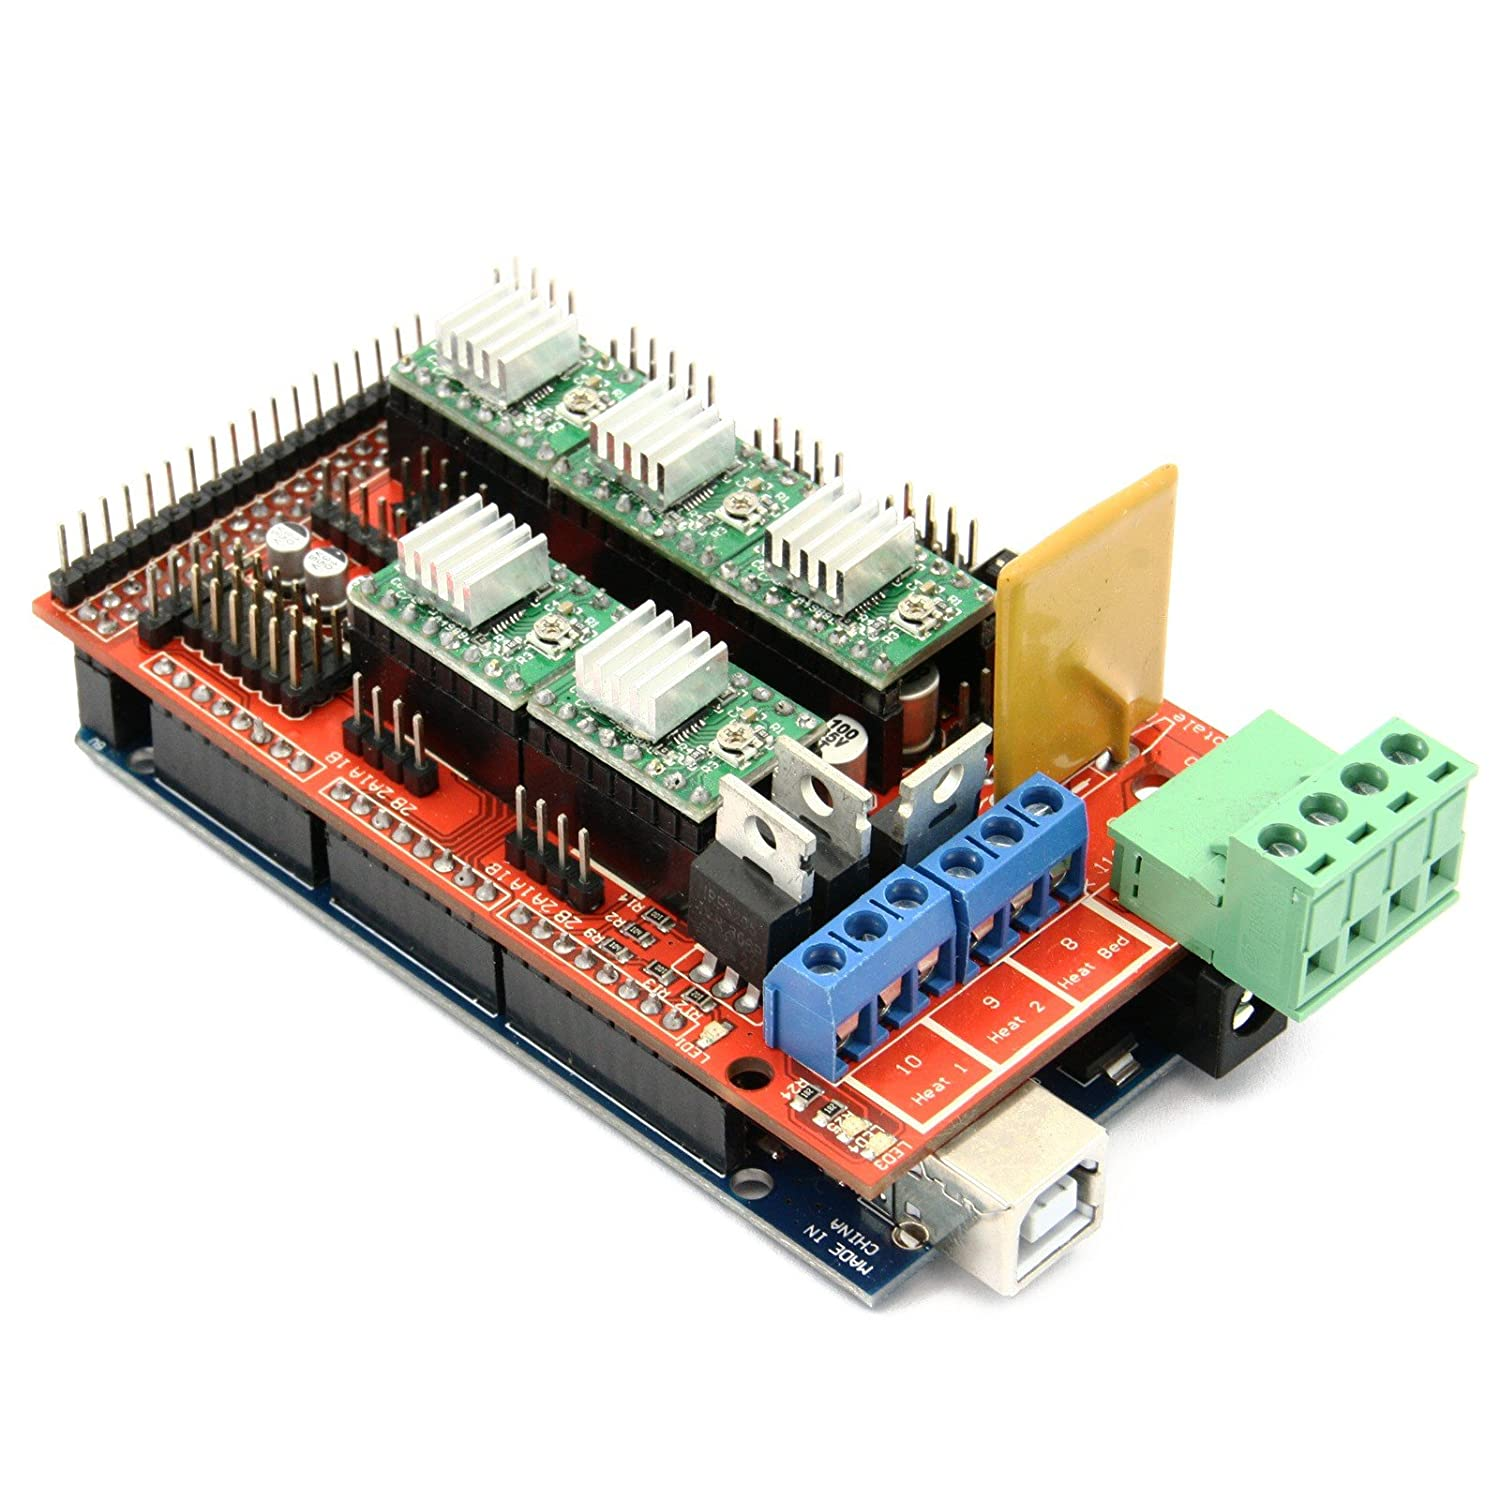 Mega2560 R3 + 5 pcs A4988 driver + RAMPS 1.4 3D Kit Geras-IT 272